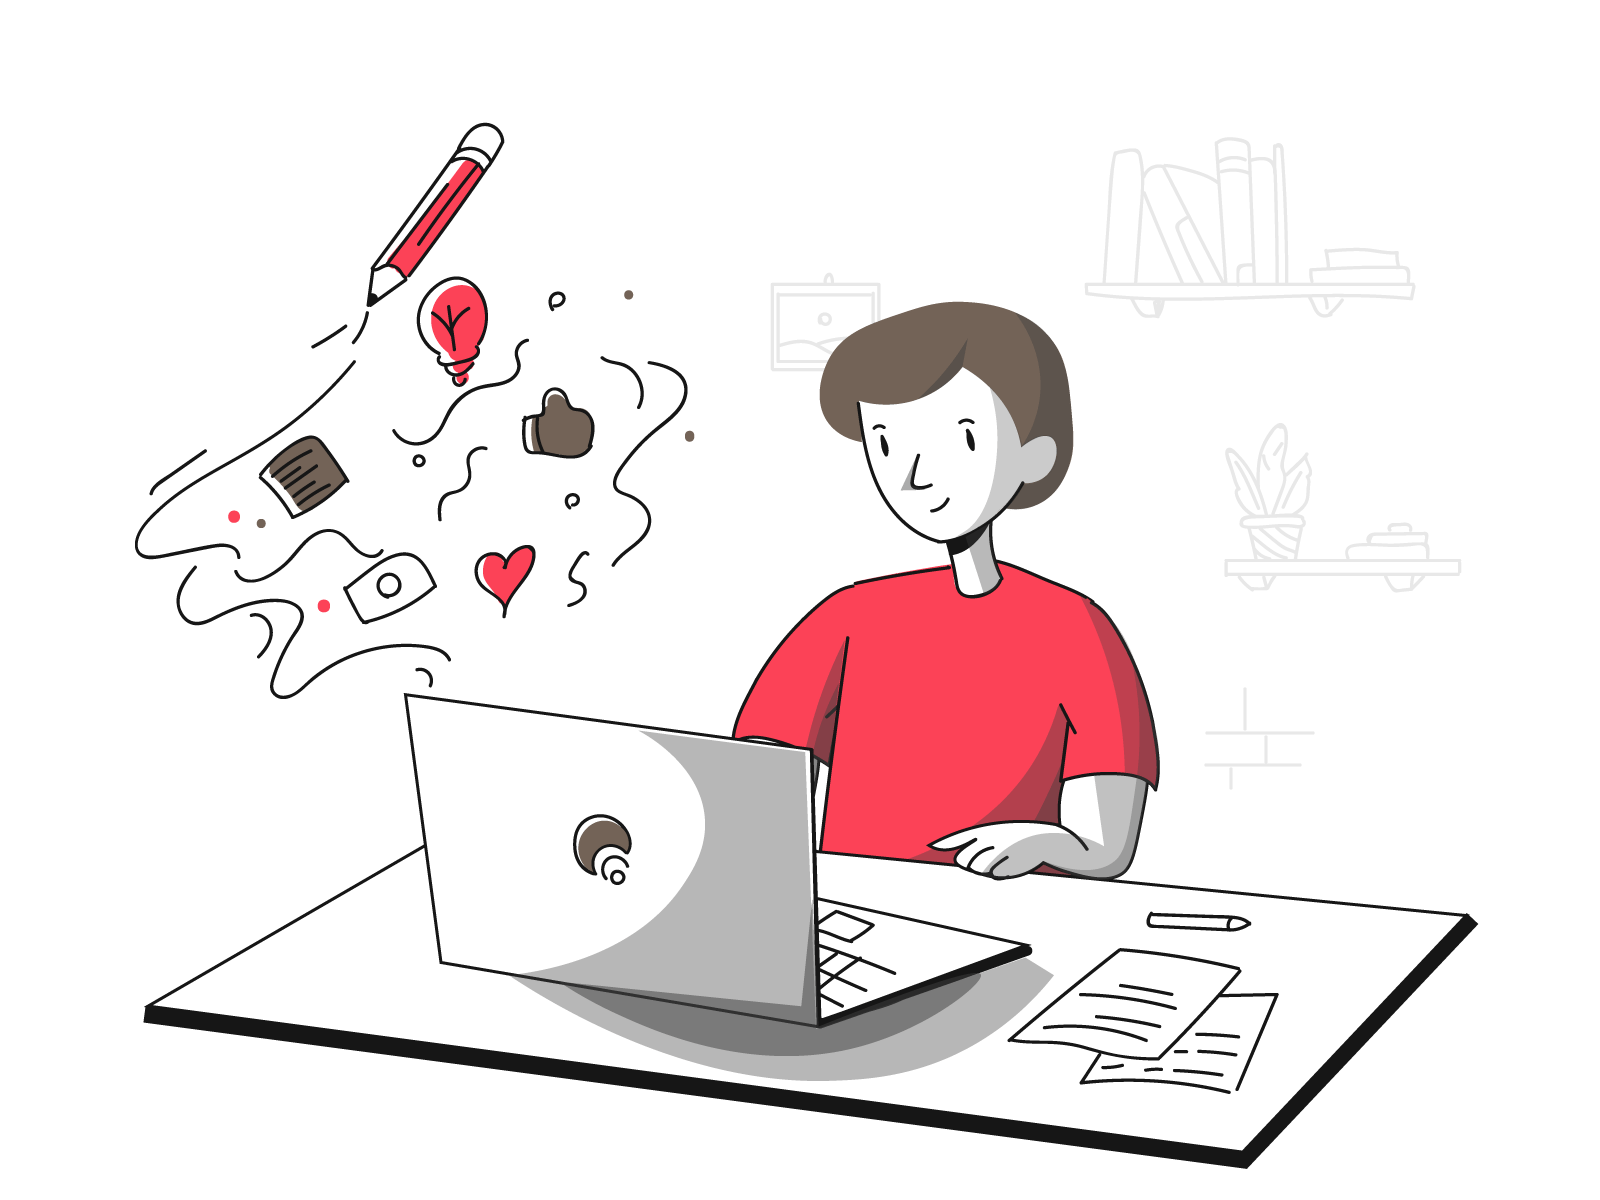 illustration of person in red top sitting at computer desk working